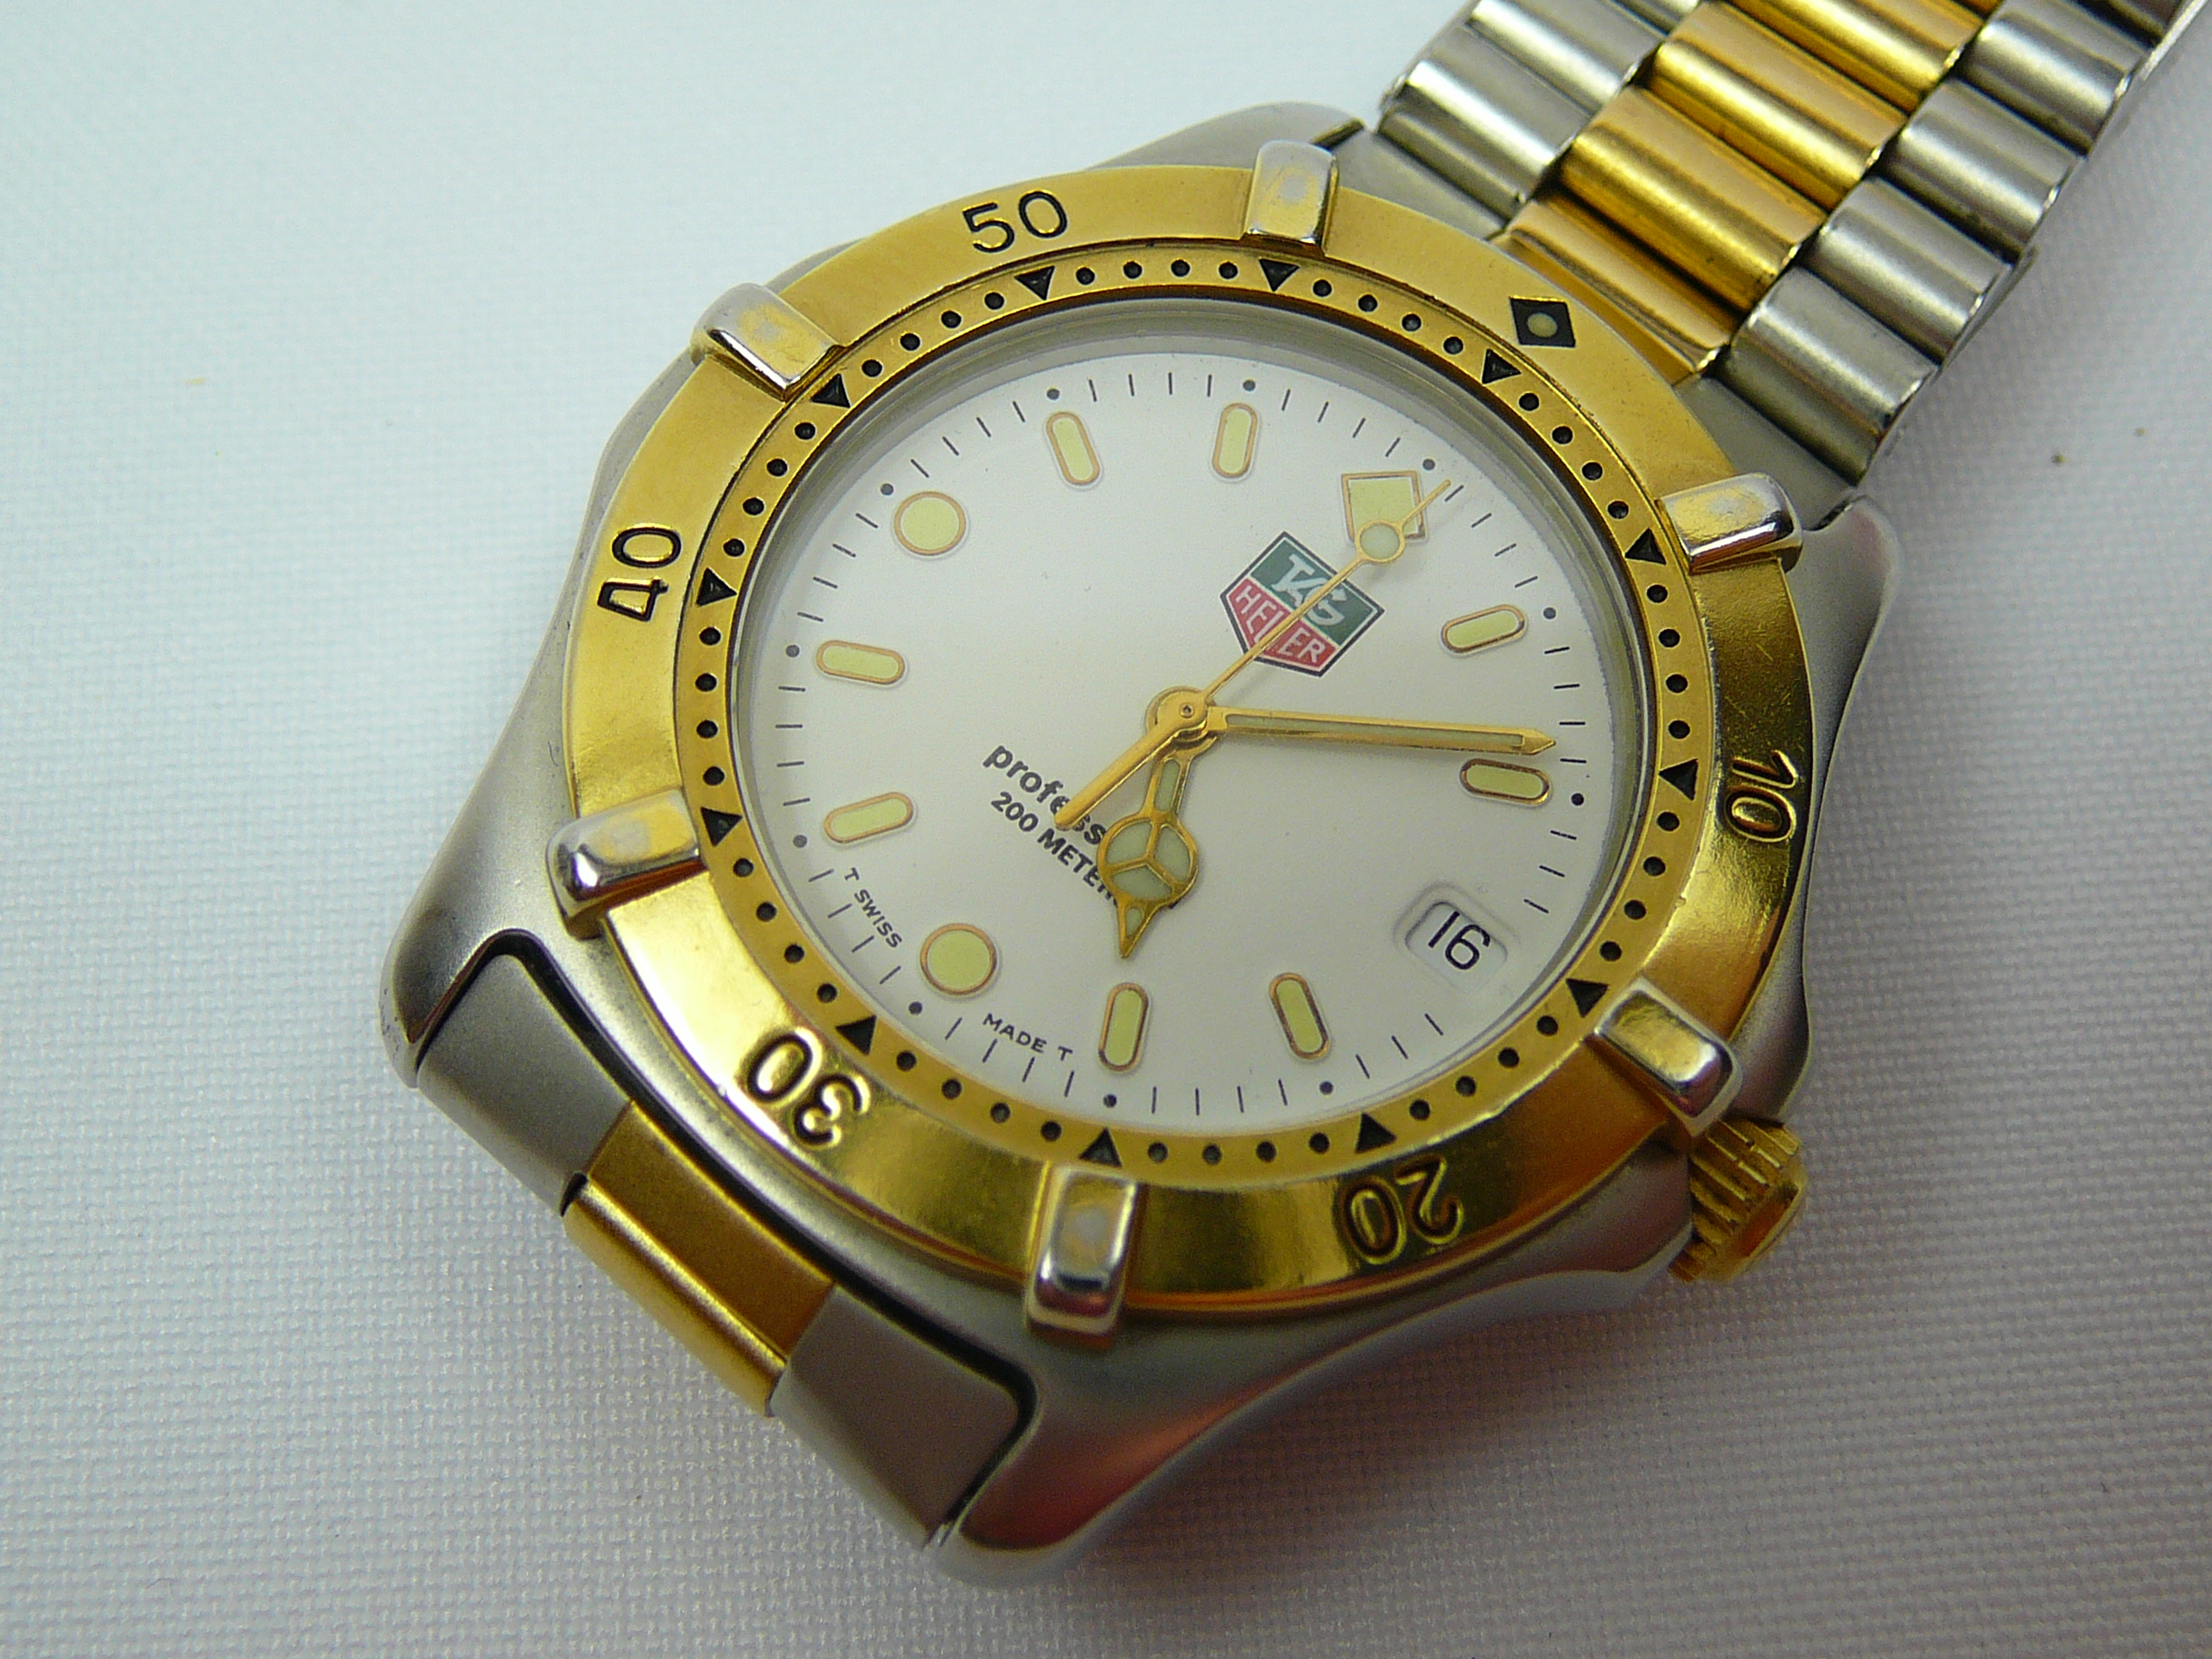 Gents TAG Heuer Wrist Watch - Image 2 of 3